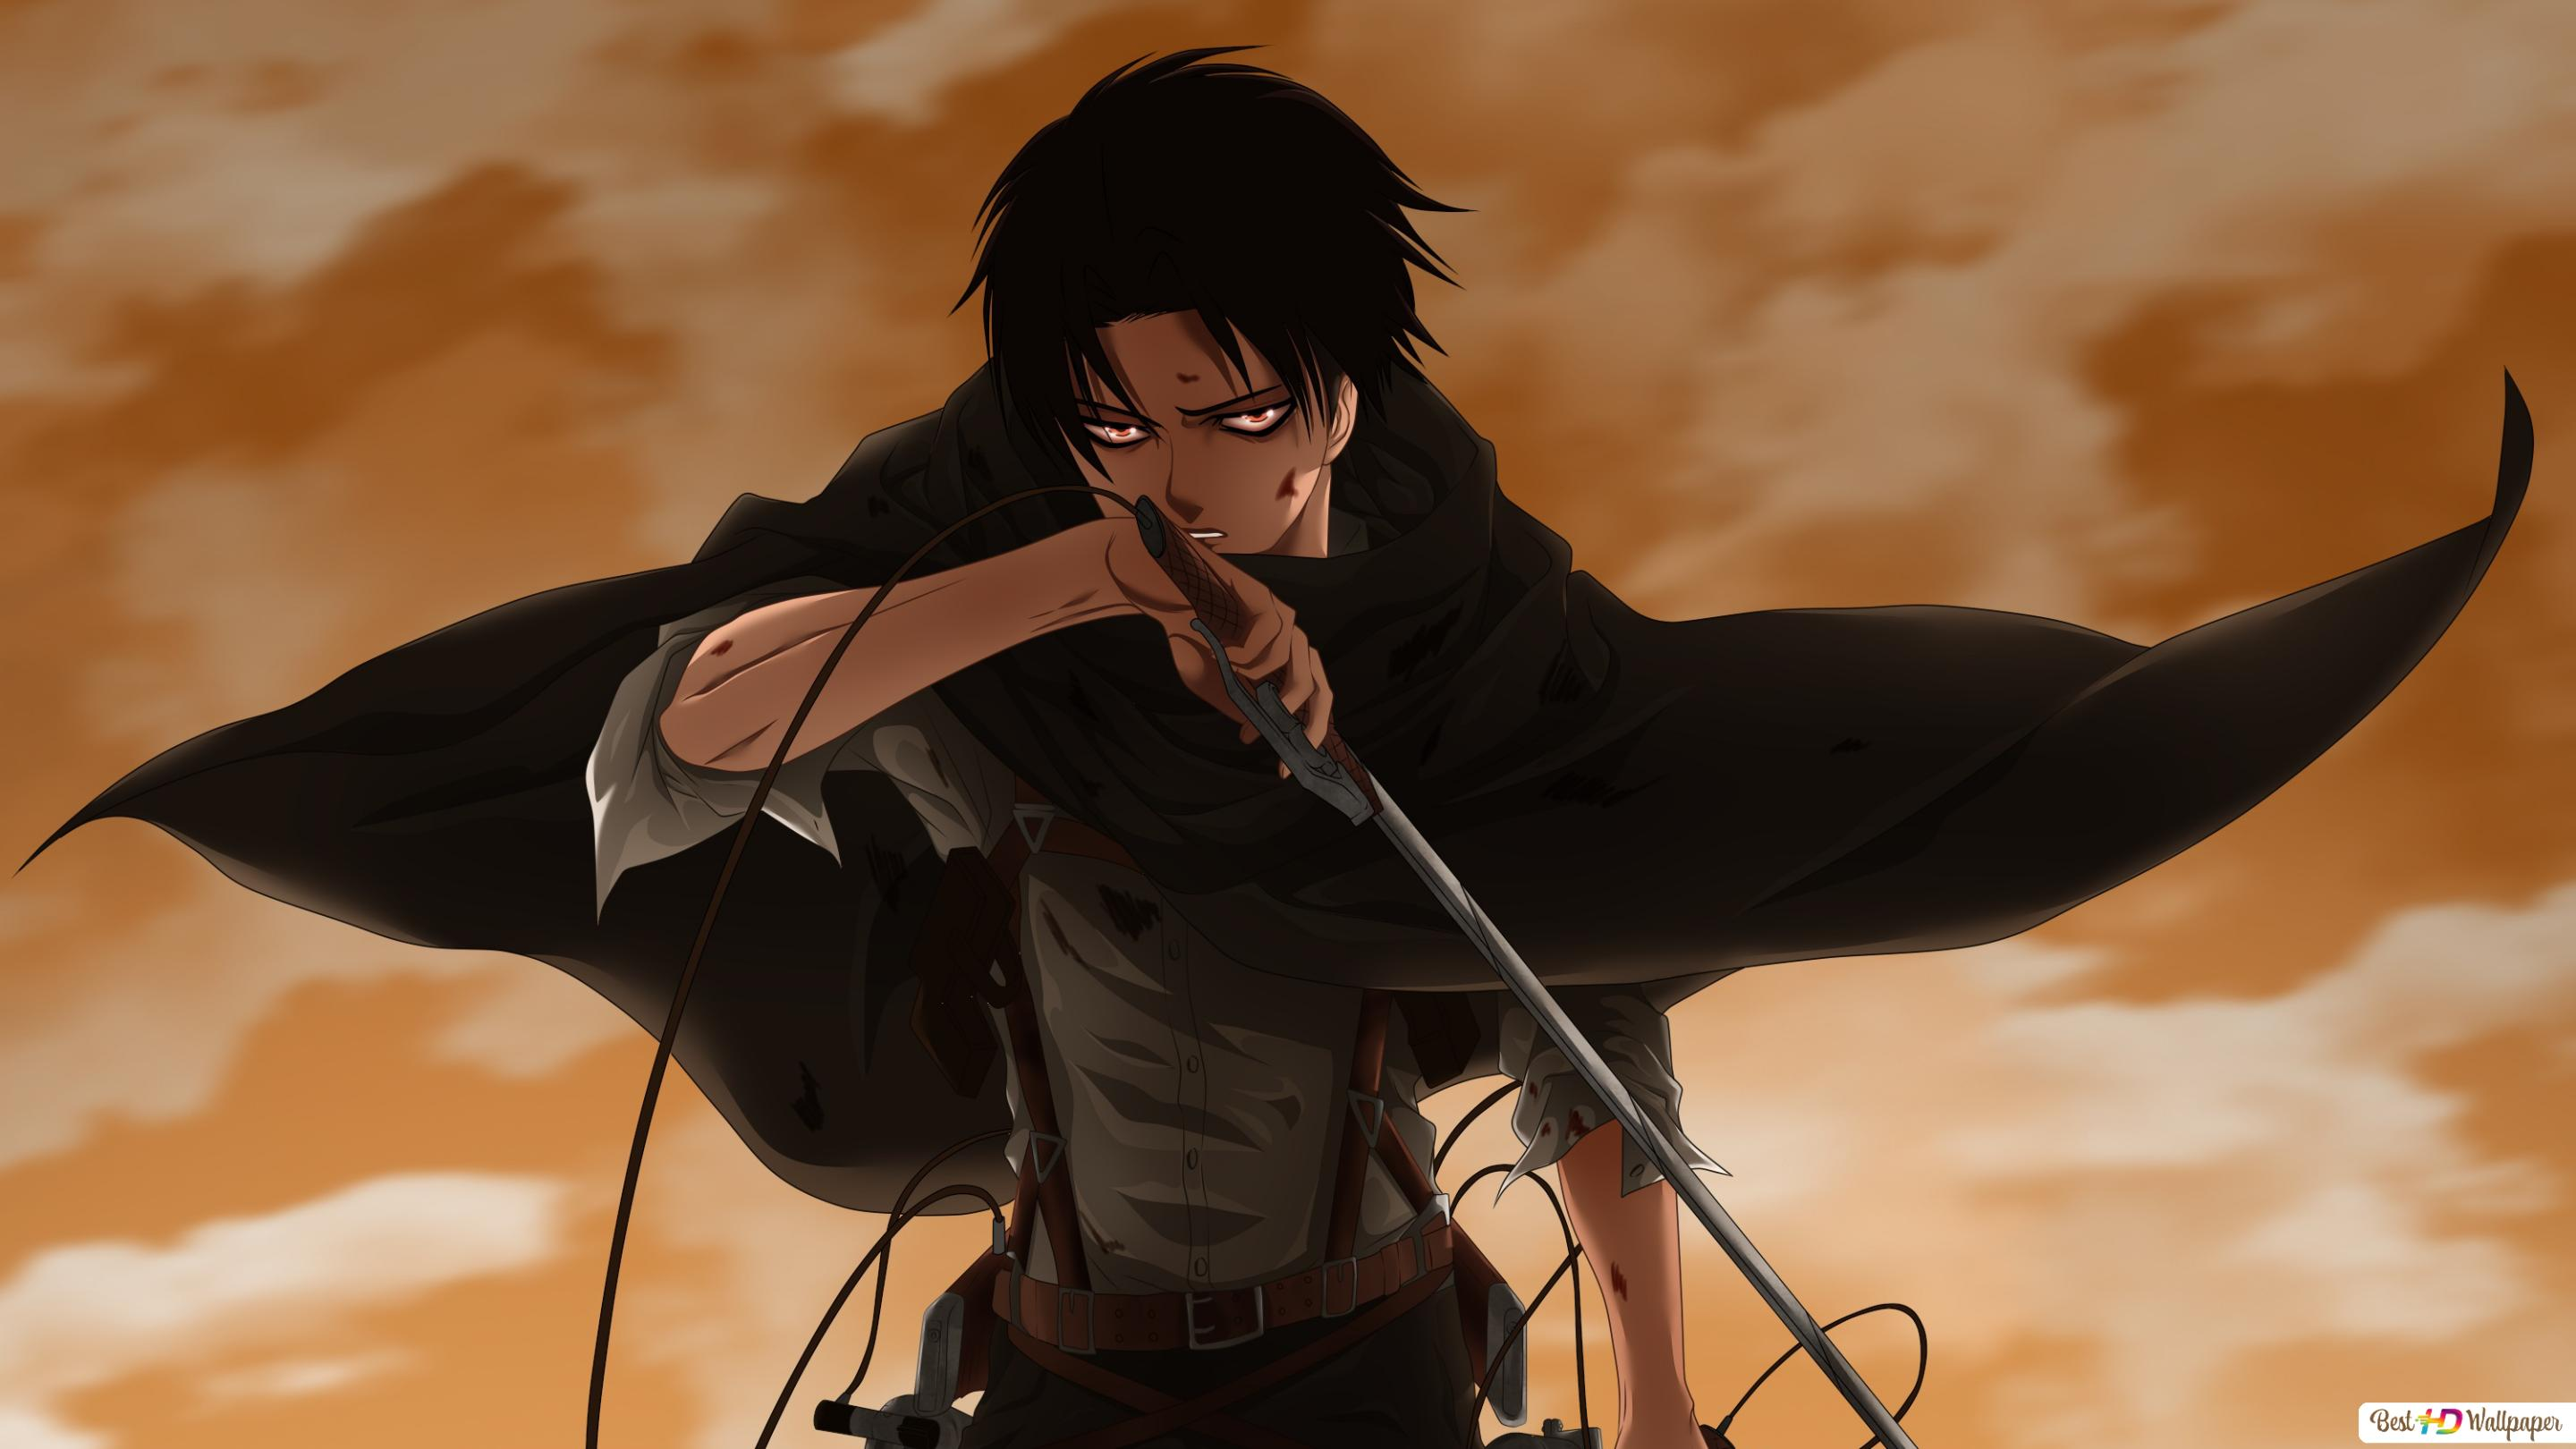 Levi Ackerman Attack On Titan Hd Wallpaper Download